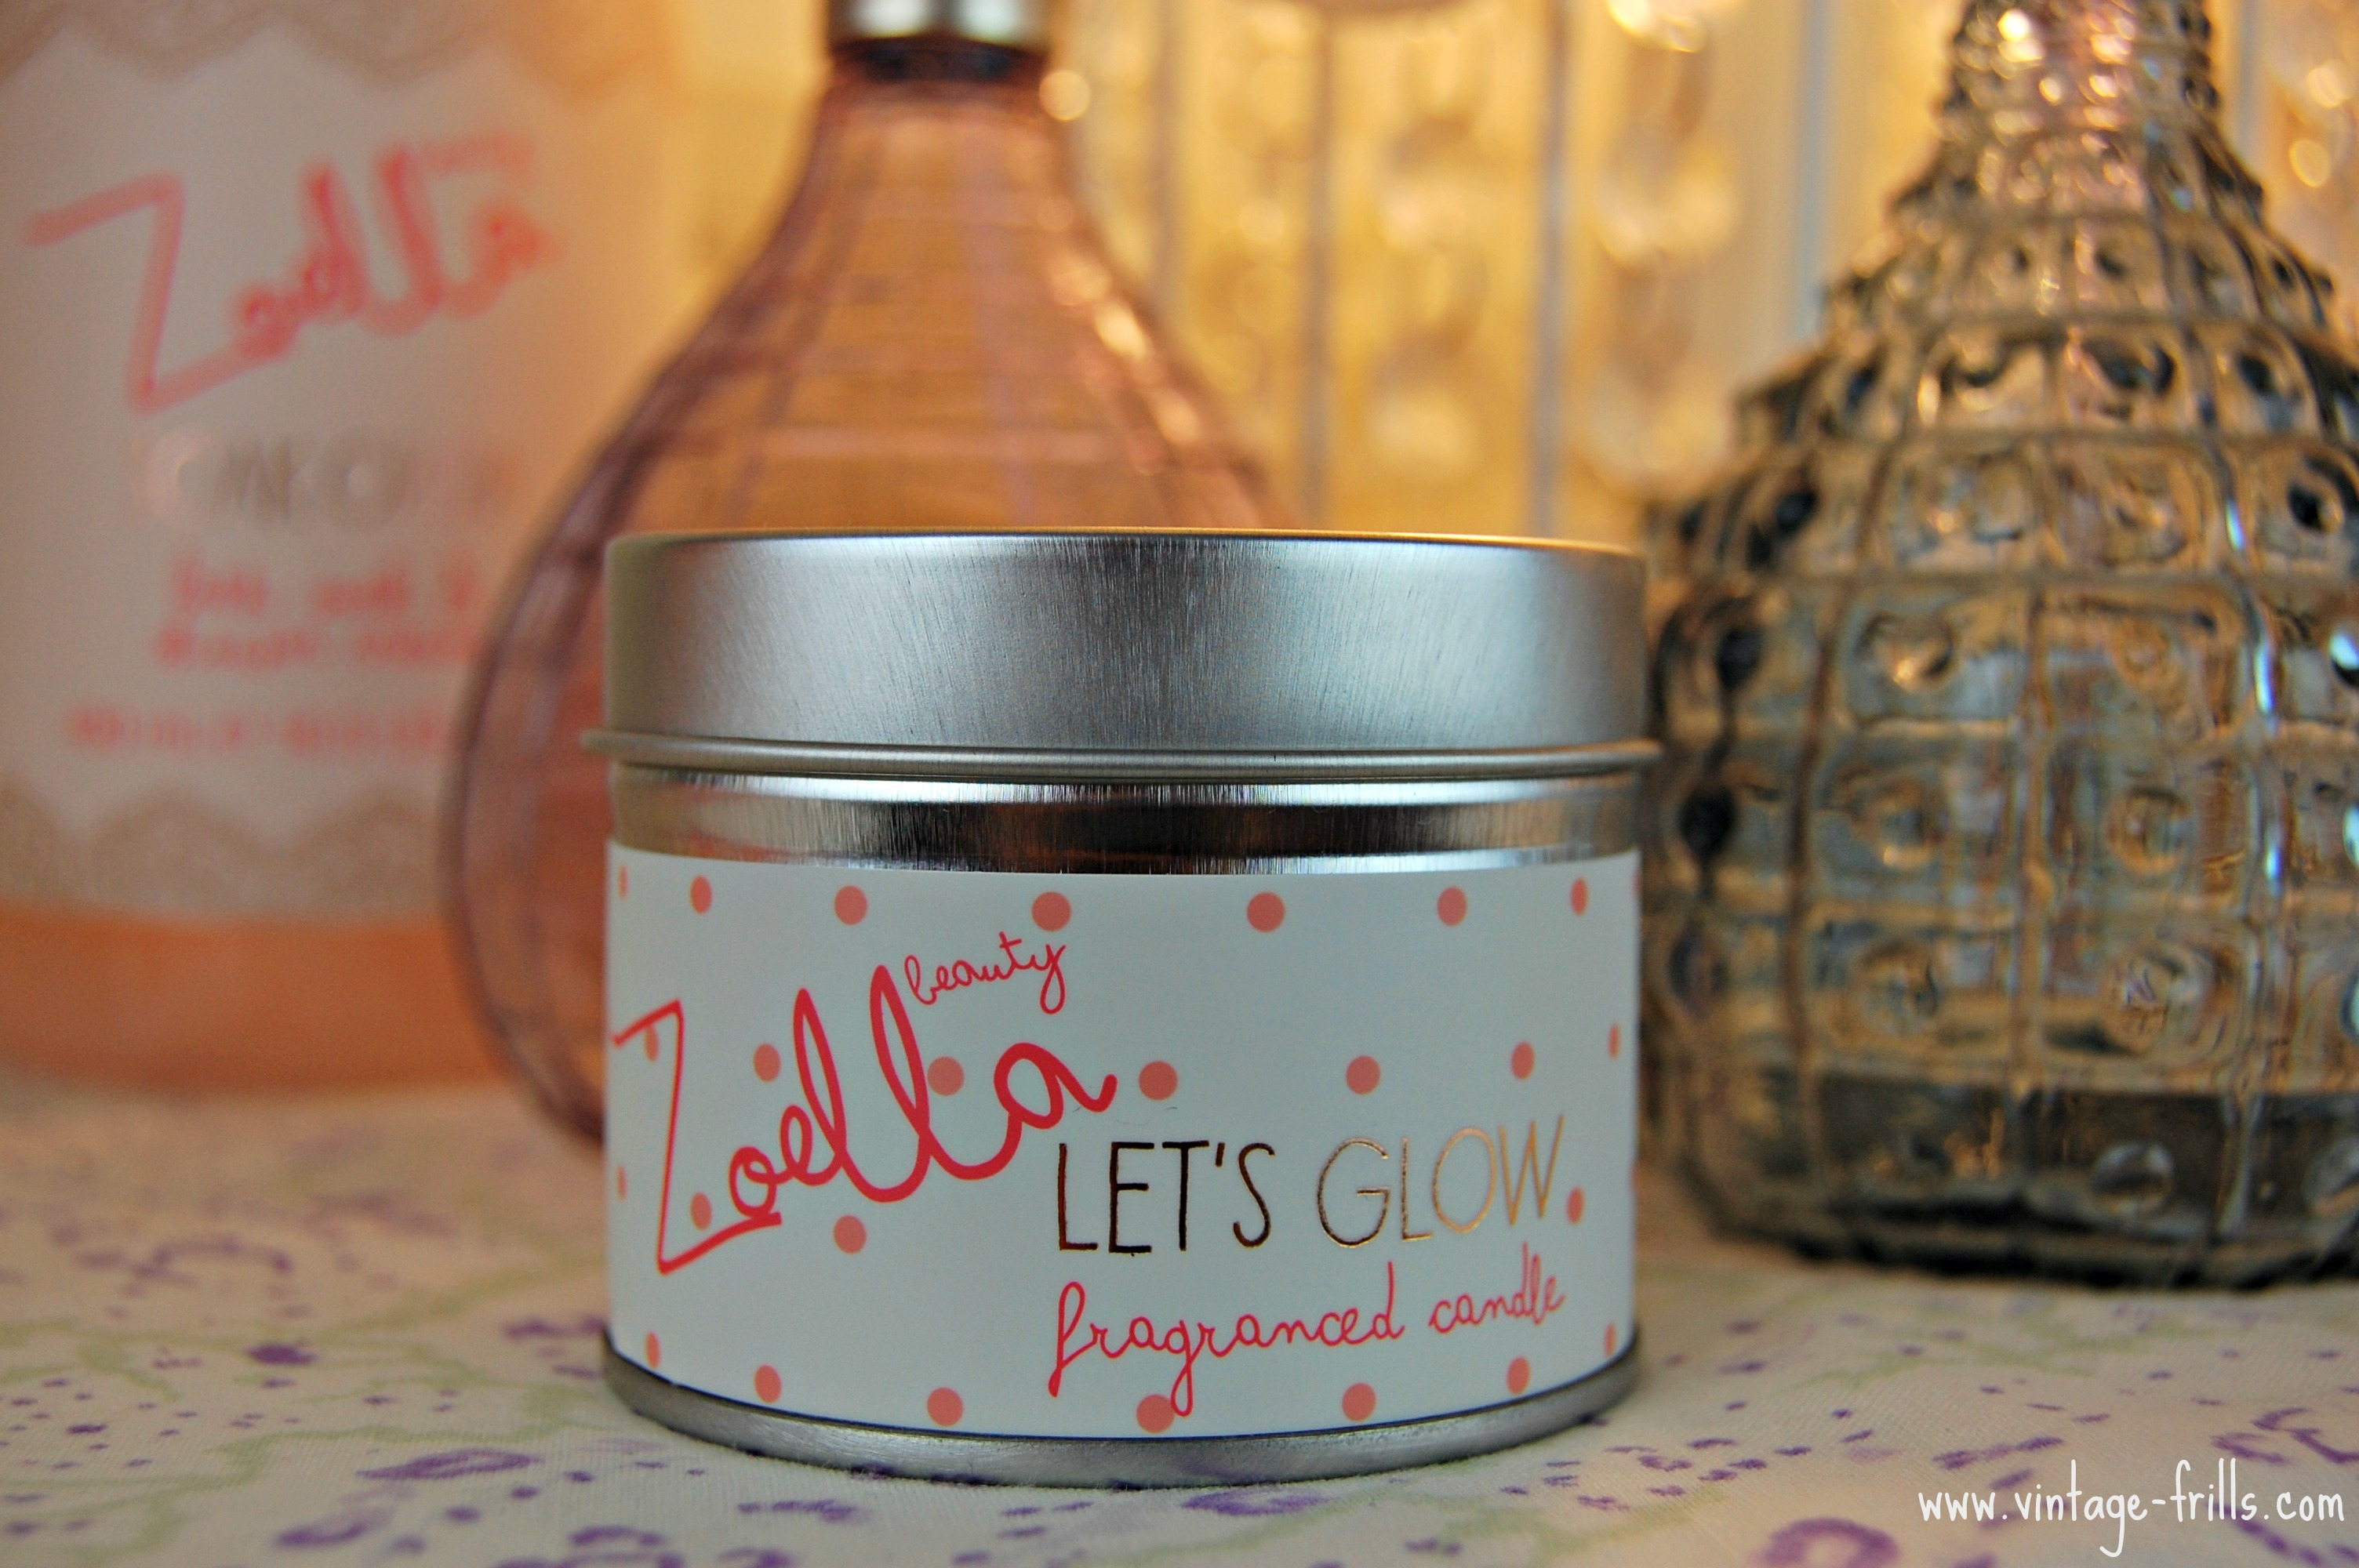 Zoella, Zoella Beauty, Candle, Let's Glow